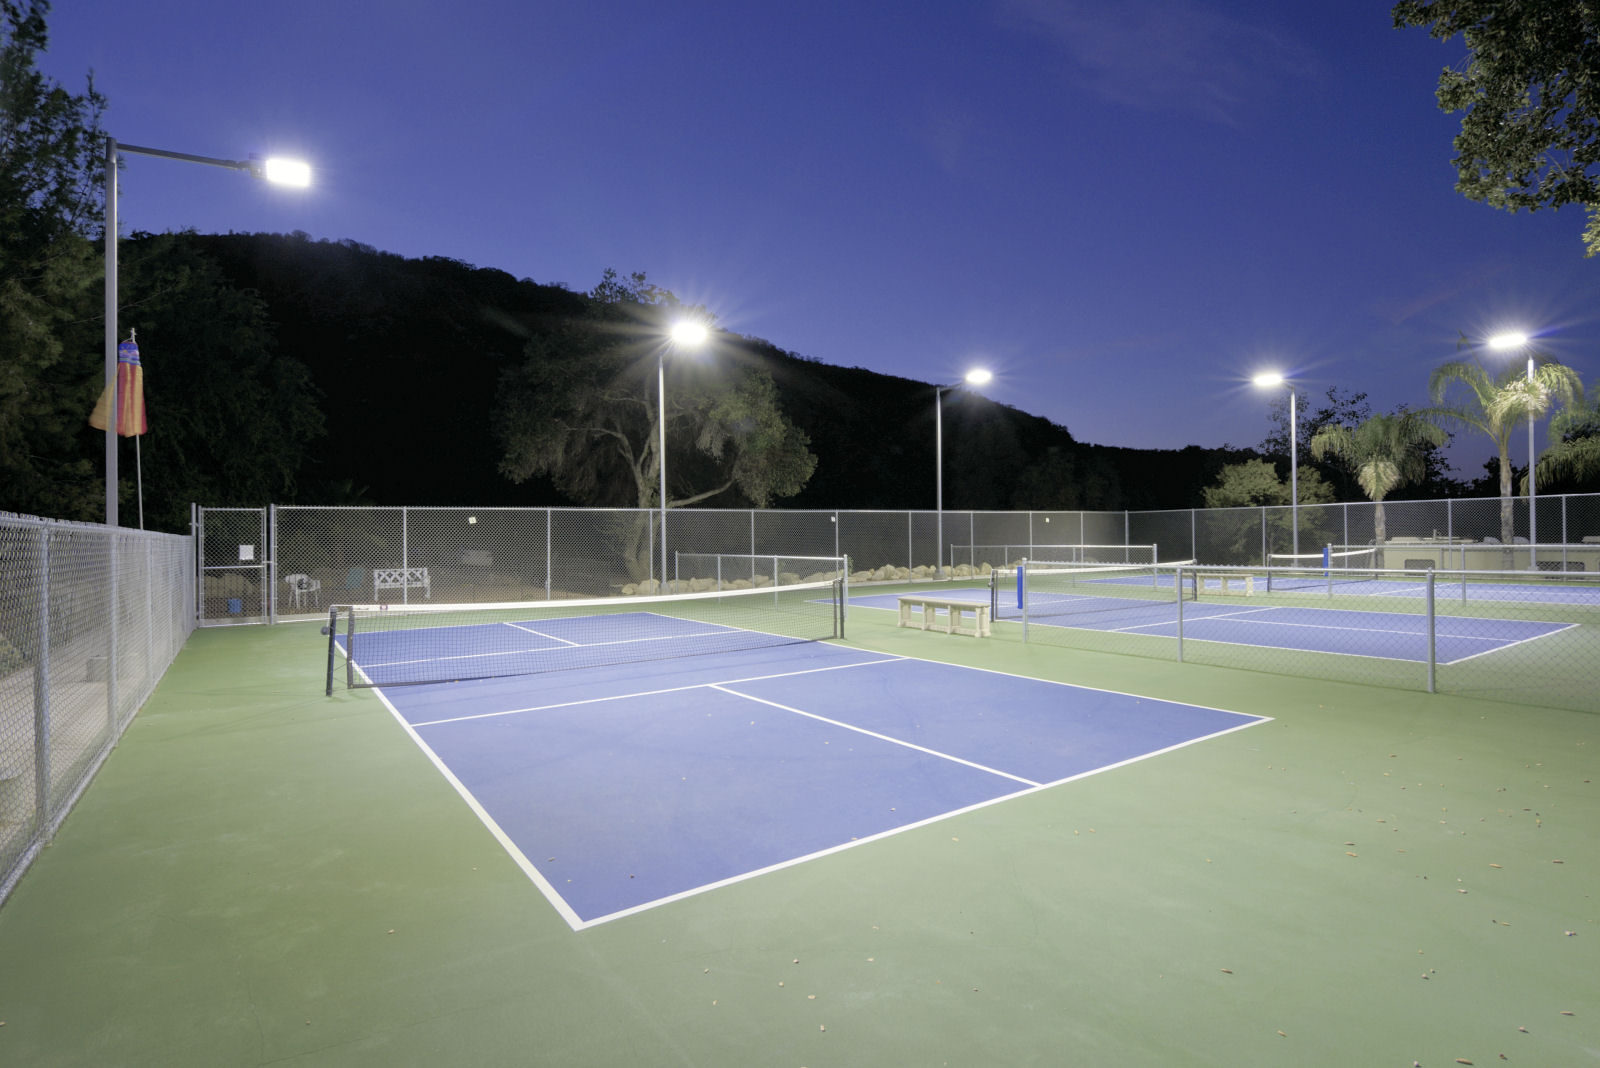 outdoor tennis court-4